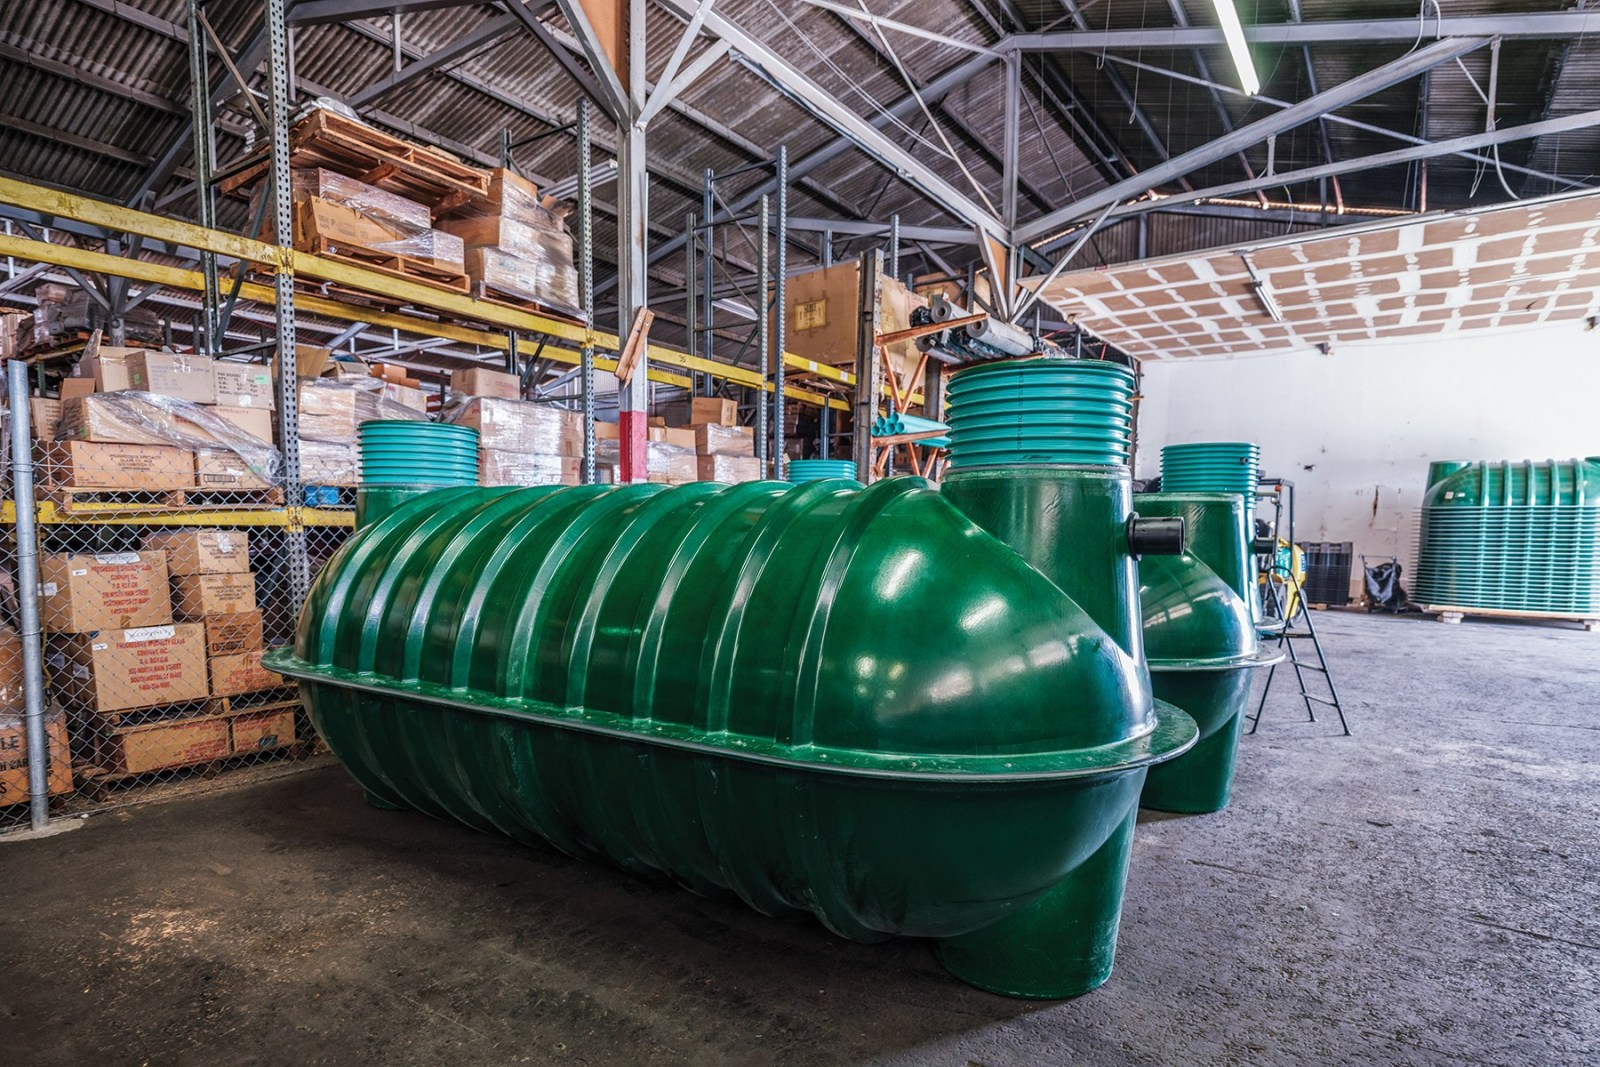 How much septic tank cost-Houston TX Septic Tank Pumping, Installation, & Repairs-We offer Septic Service & Repairs, Septic Tank Installations, Septic Tank Cleaning, Commercial, Septic System, Drain Cleaning, Line Snaking, Portable Toilet, Grease Trap Pumping & Cleaning, Septic Tank Pumping, Sewage Pump, Sewer Line Repair, Septic Tank Replacement, Septic Maintenance, Sewer Line Replacement, Porta Potty Rentals, and more.